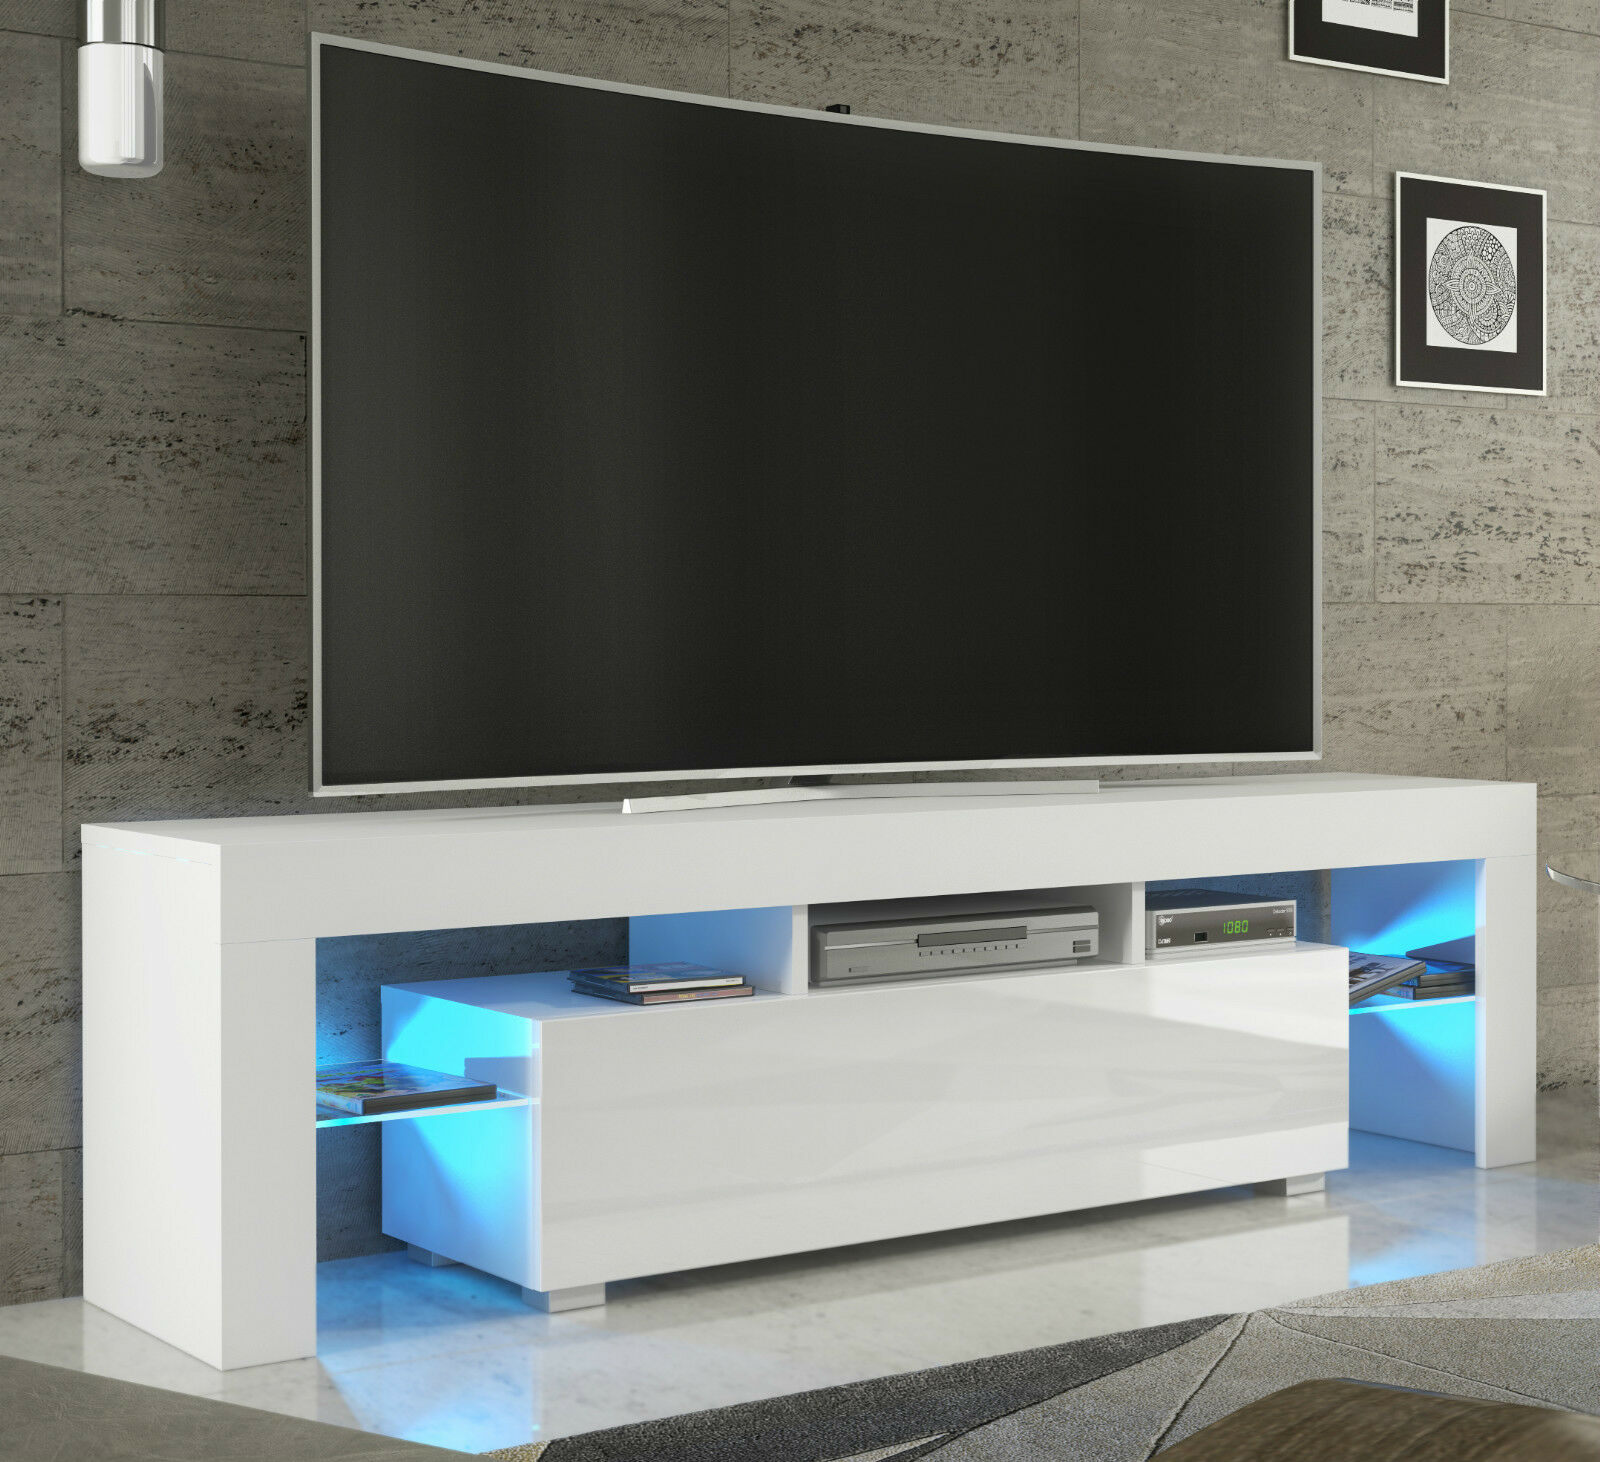 tv 2rack fernsehschrank lowboard sideboard hochglanz weiss. Black Bedroom Furniture Sets. Home Design Ideas